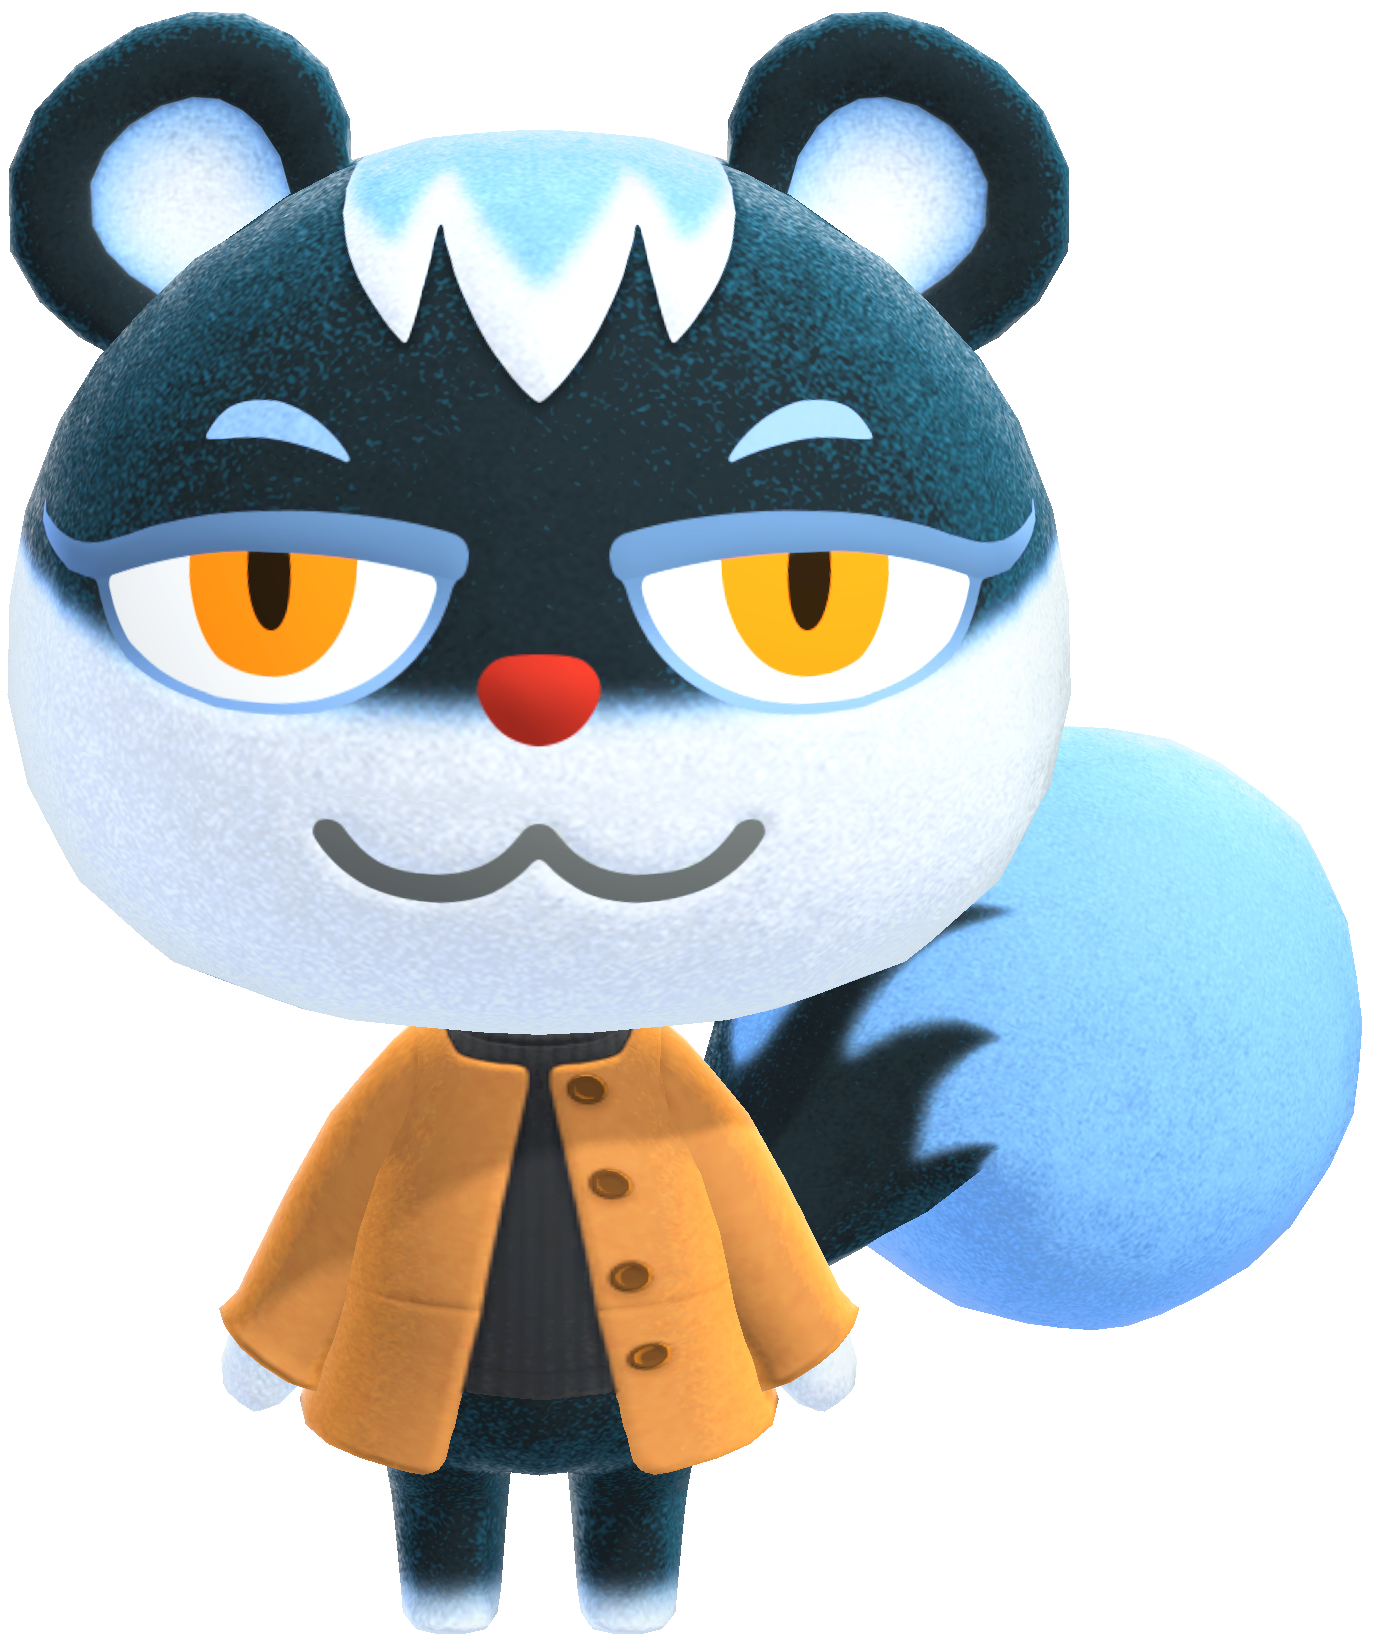 Tasha Animal Crossing Wiki Fandom